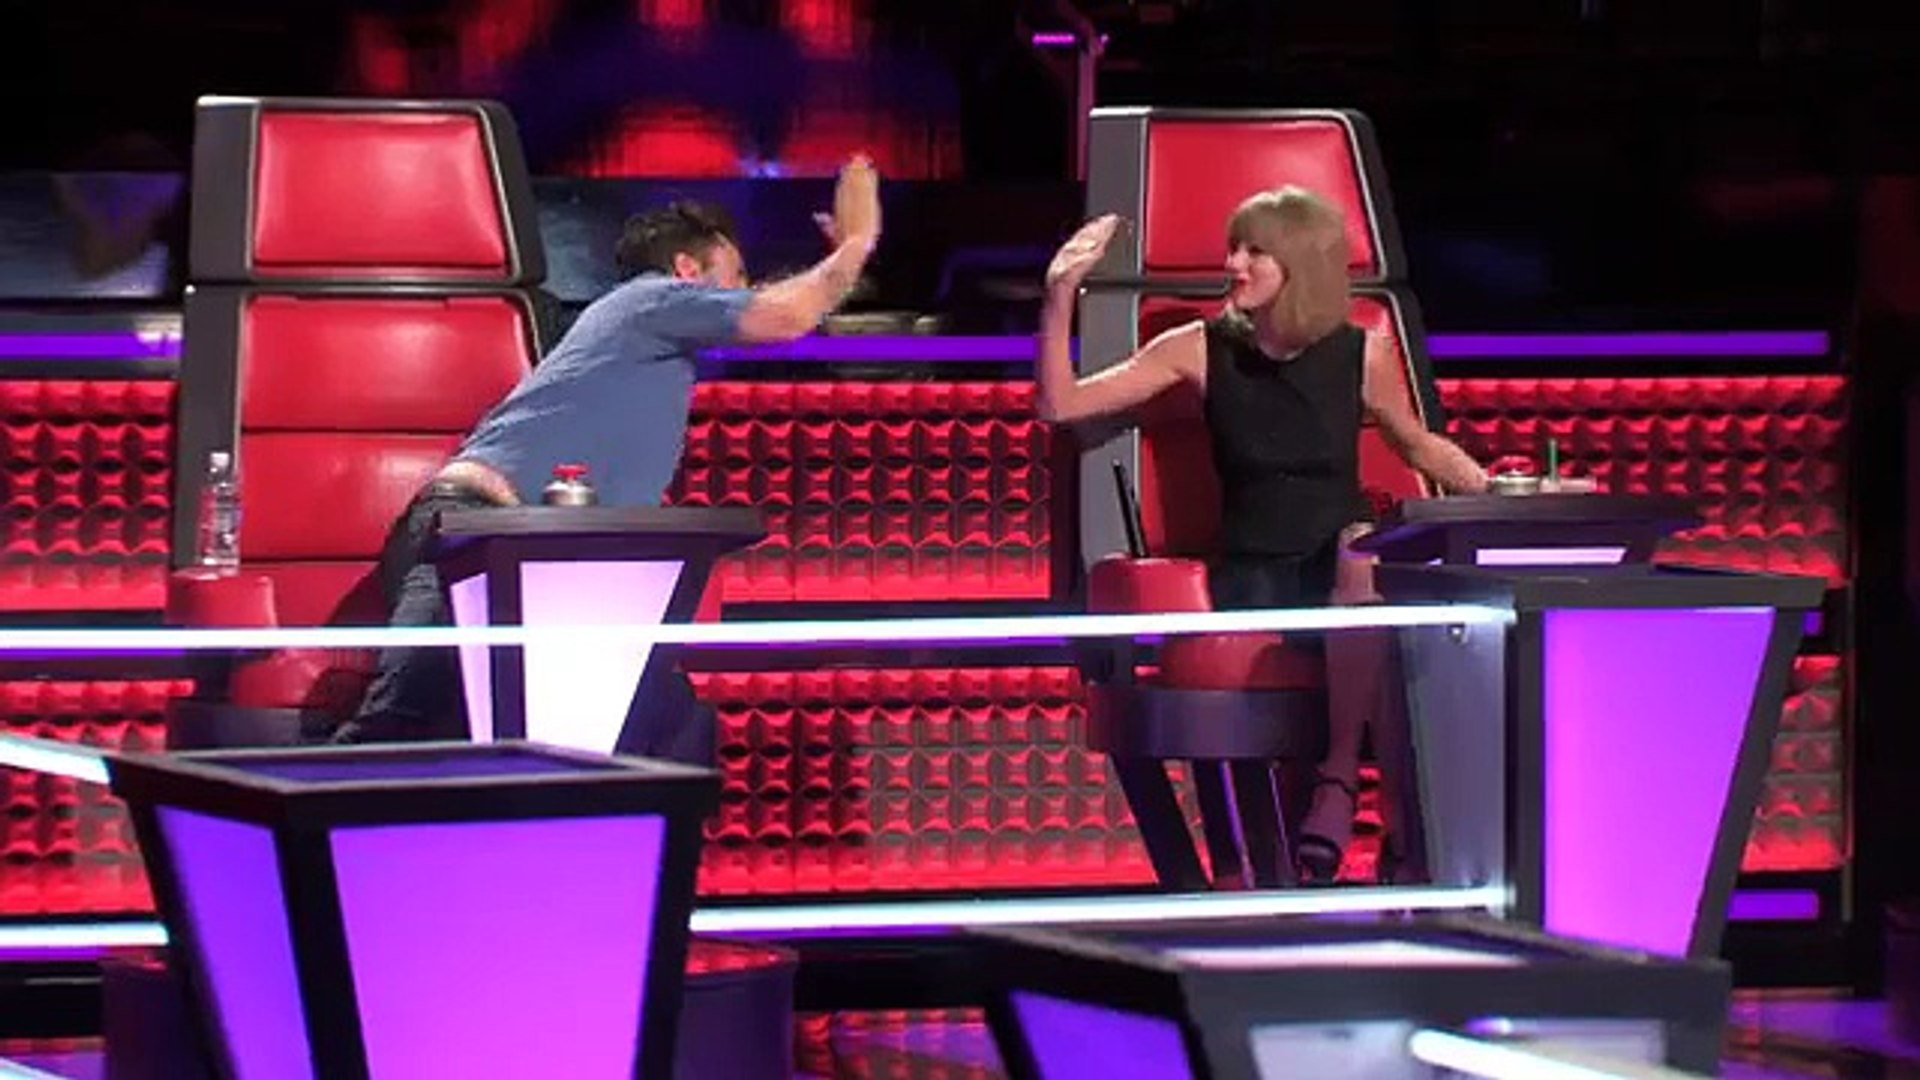 Taylor Swift - Dancing, Tall People & Lots of Taylors - The Voice Season 7 Knockout Rehearsals